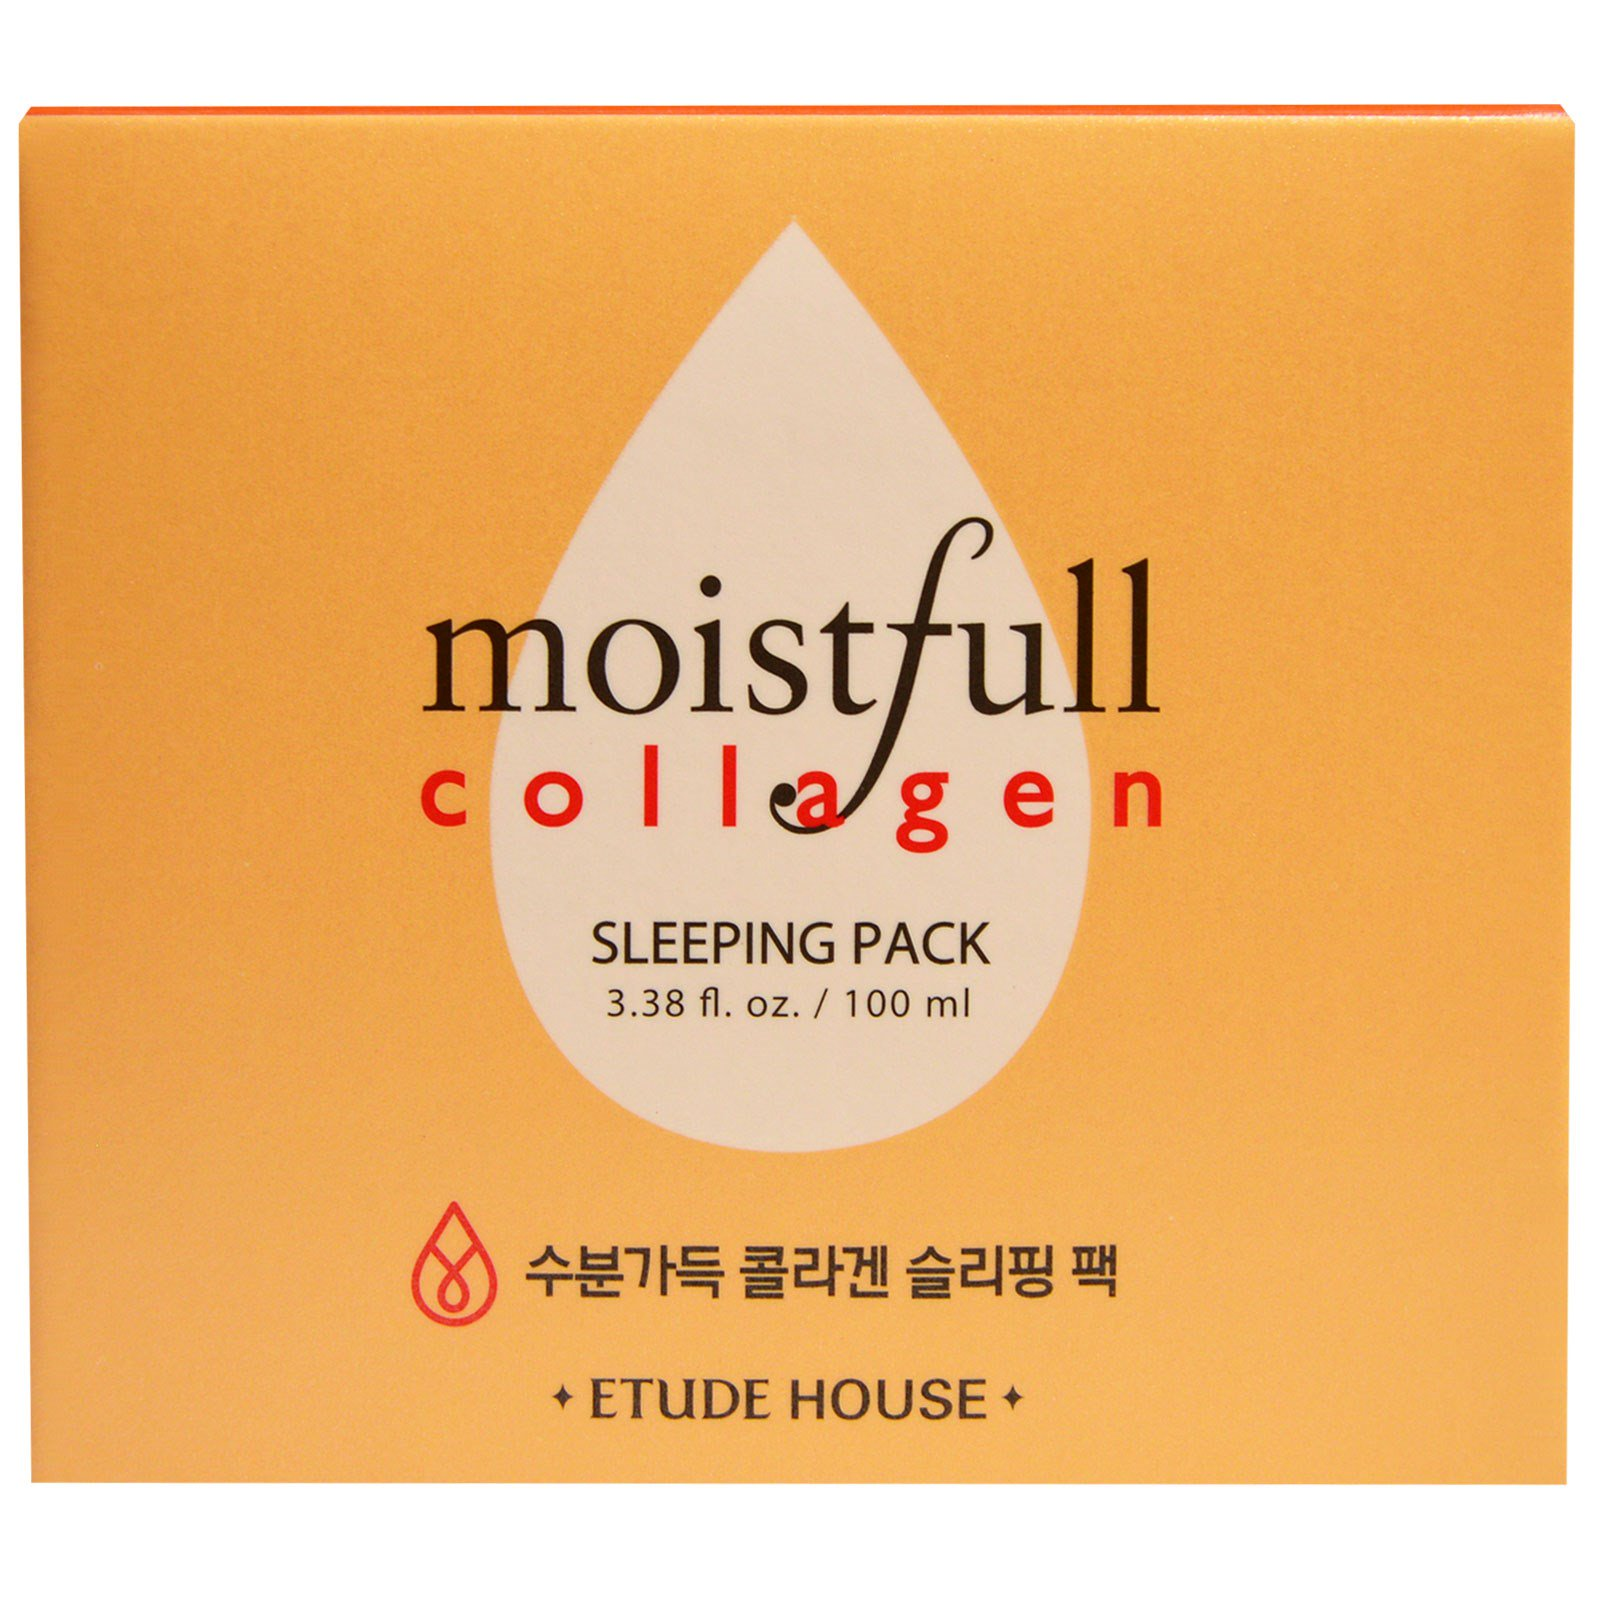 Etude House, Moistfull Collagen Sleeping Pack, 3.38 fl oz (100 ml). By Etude House